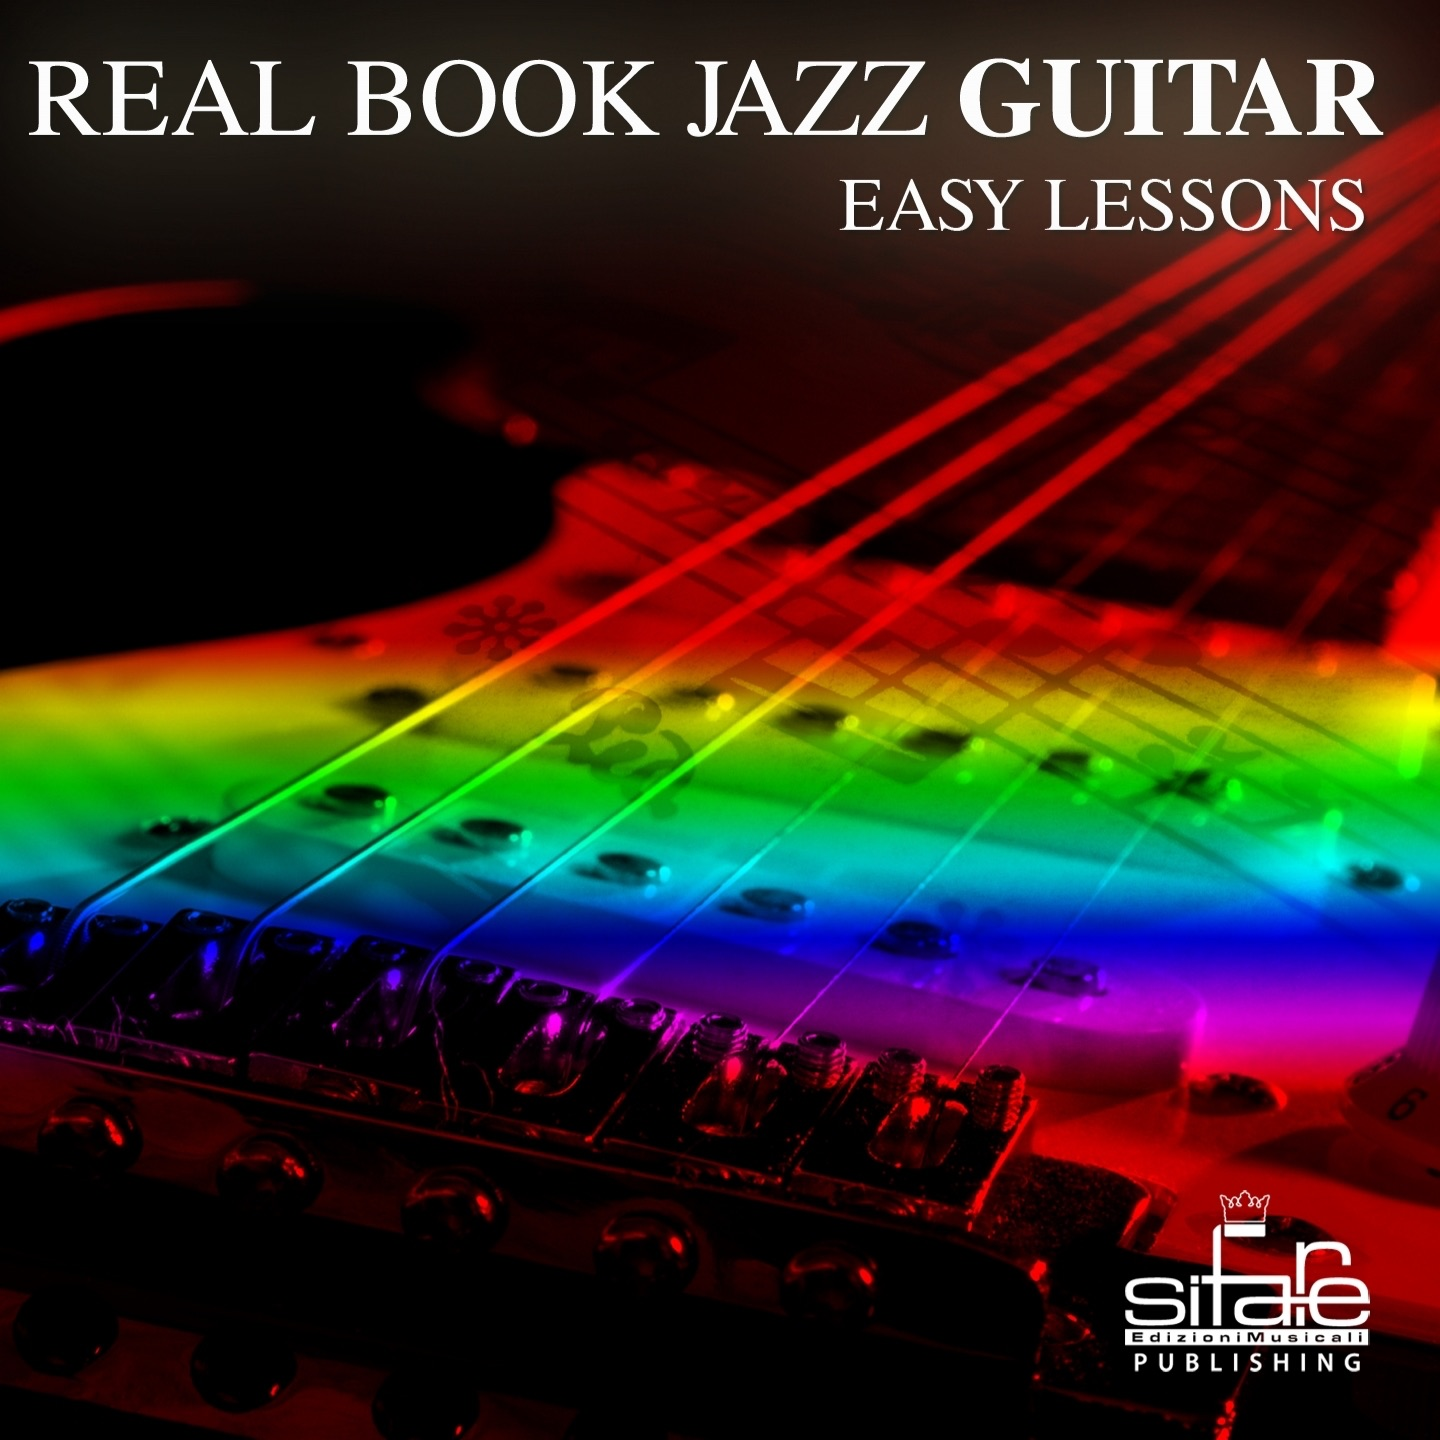 Real Book Jazz Guitar Easy Lessons, Vol. 3 - Single